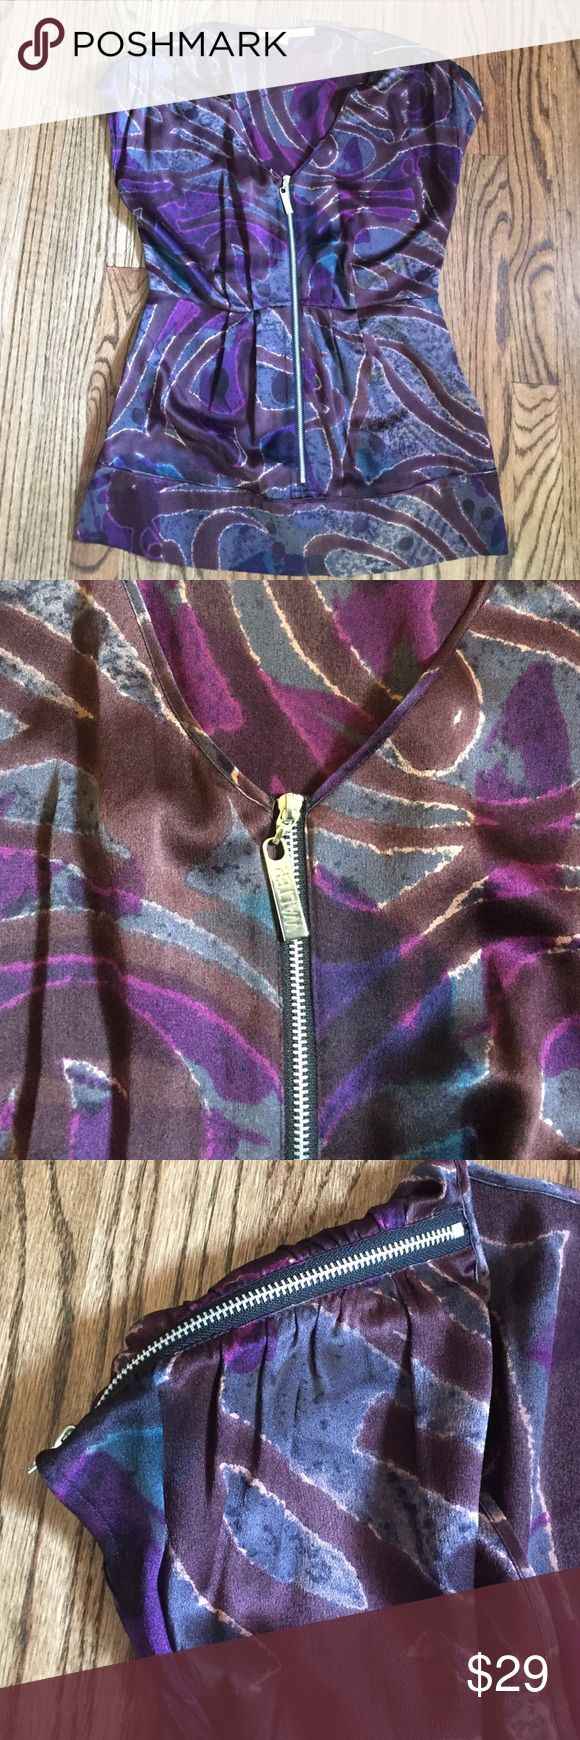 Walter Baker Purple Silk Top Walter Baker.  Used but great condition. Dry clean only.  100% silk.  Beautiful fit & pattern!! Cool zippered detail on sleeves and down front. Walter Baker Tops Blouses